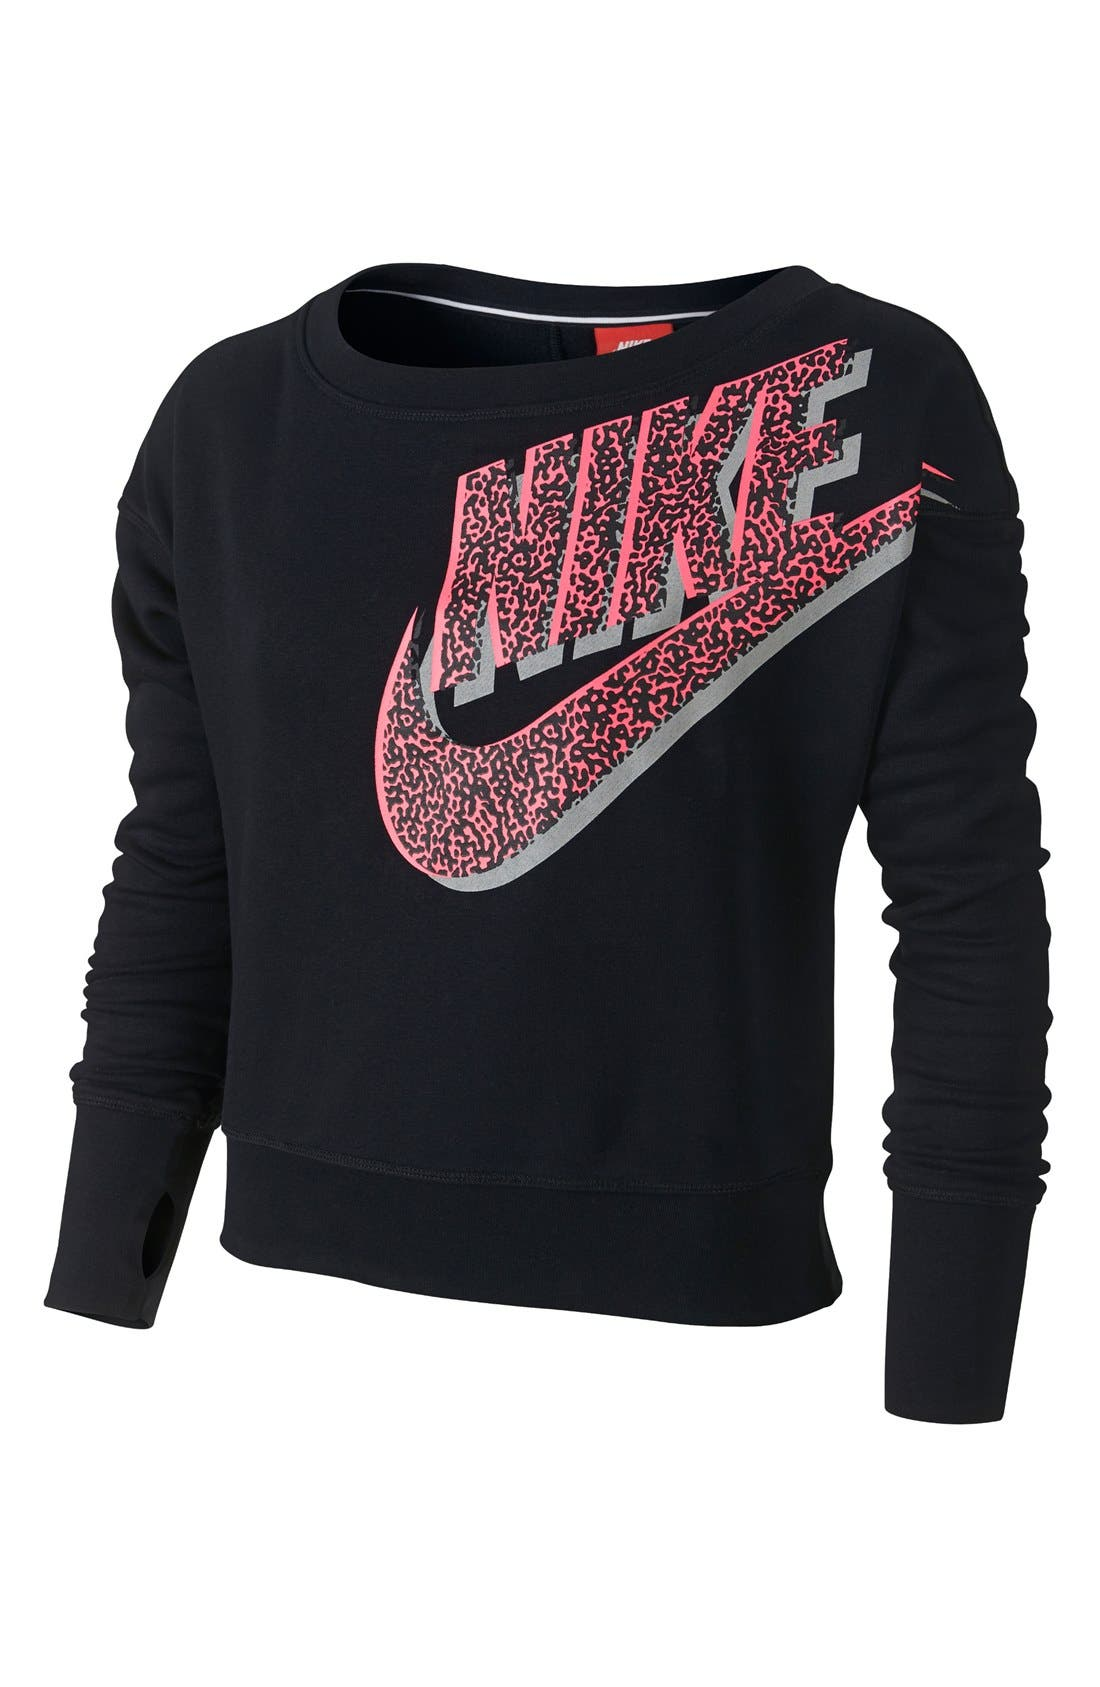 Alternate Image 1 Selected - Nike Crop Sweatshirt (Big Girls) (Online Only)